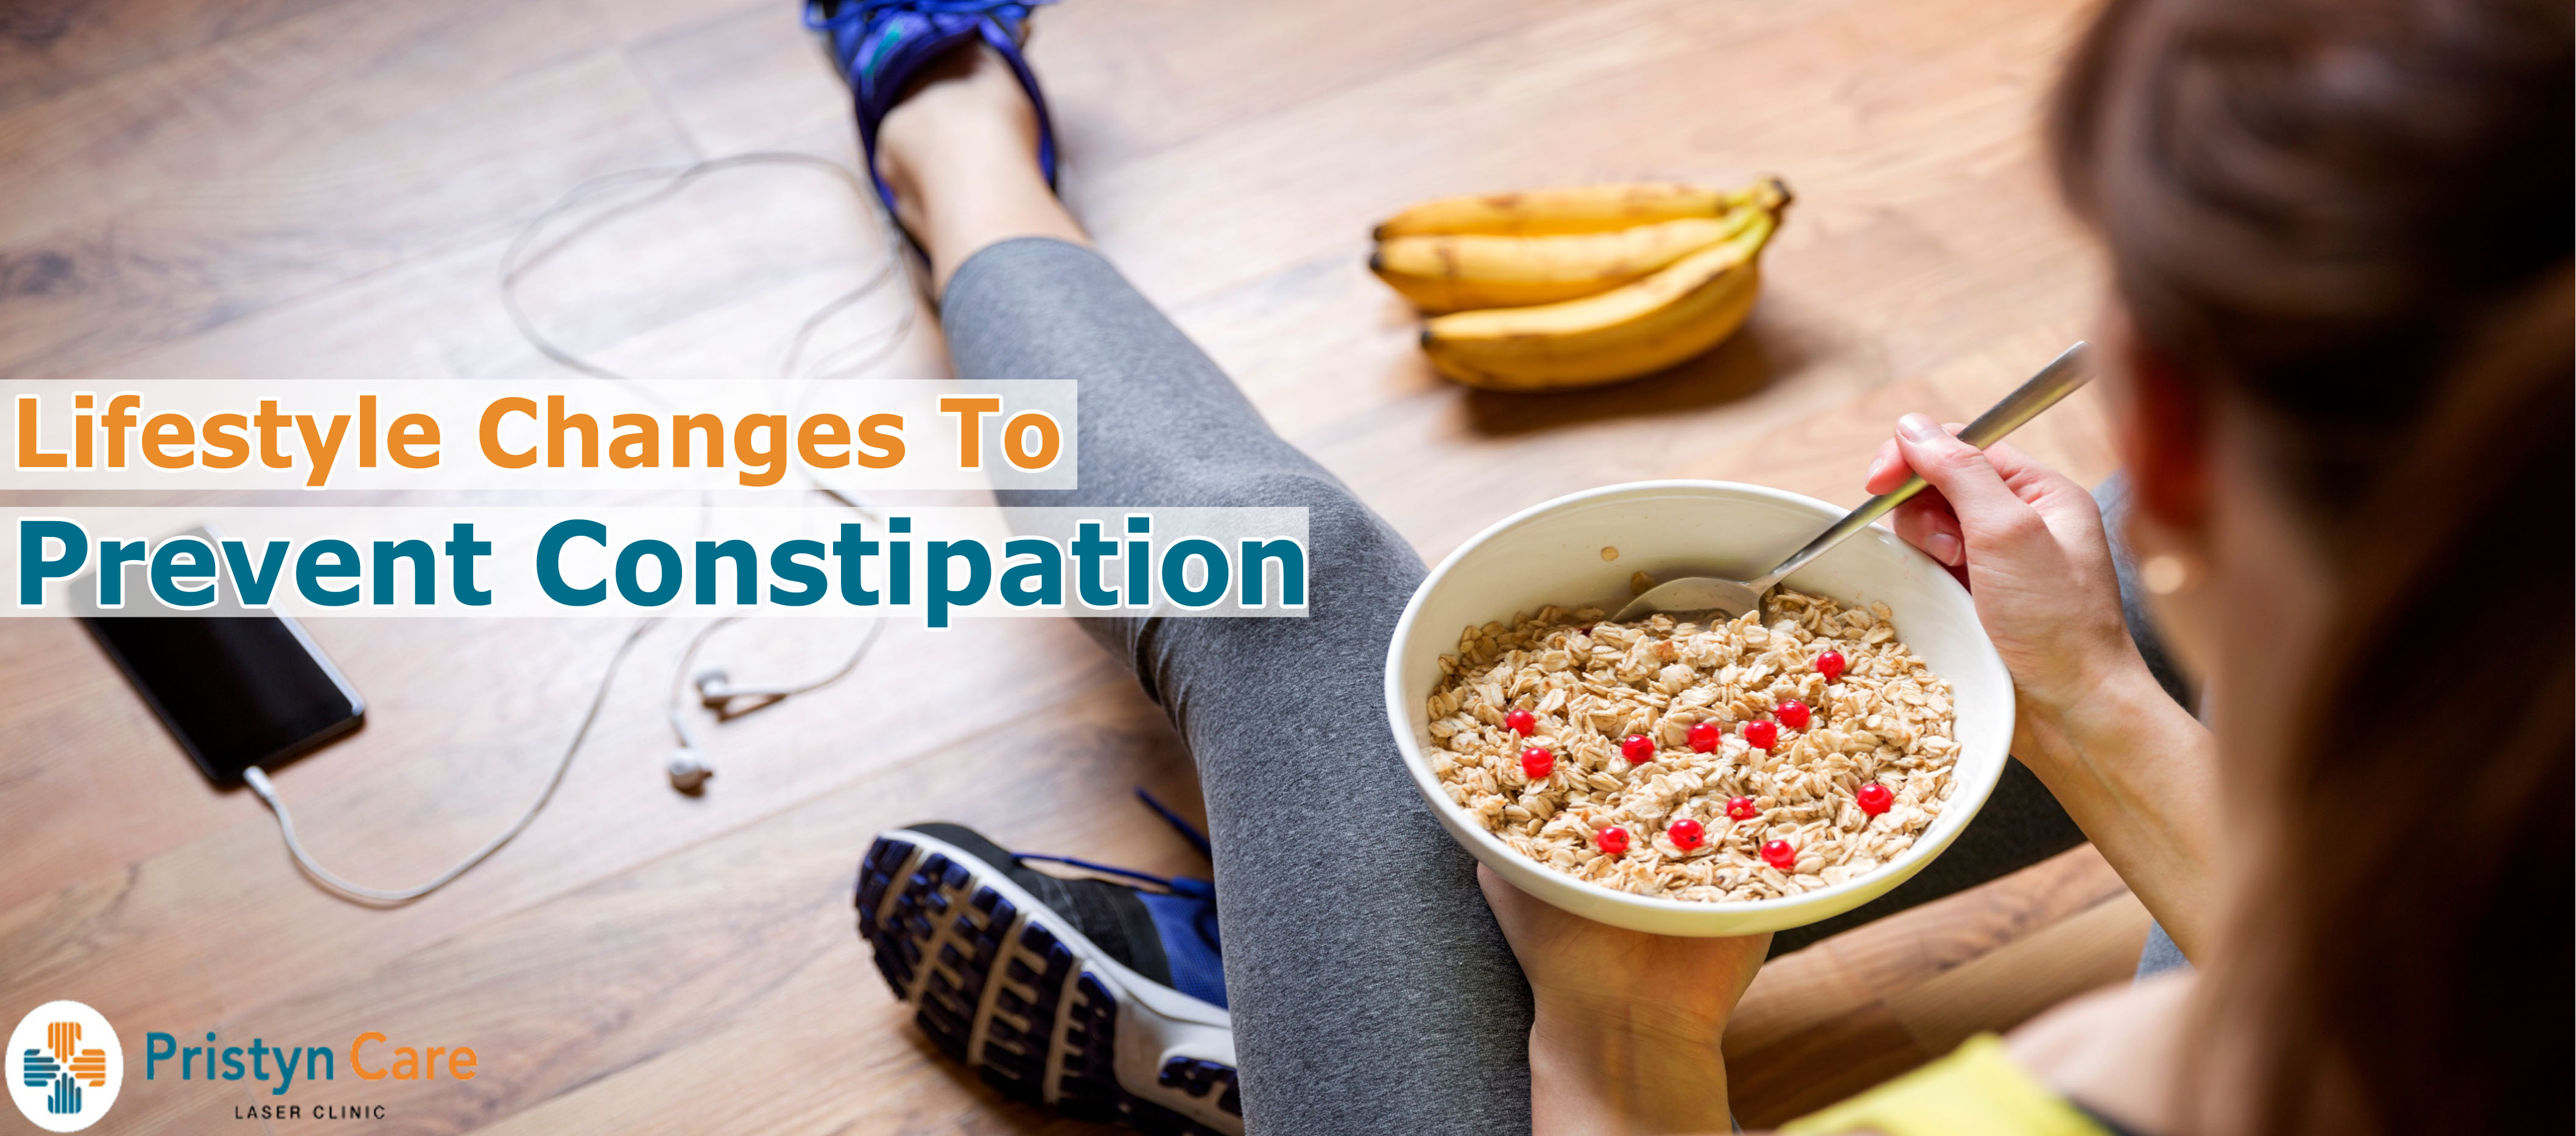 Lifestyle Changes to Prevent Constipation?